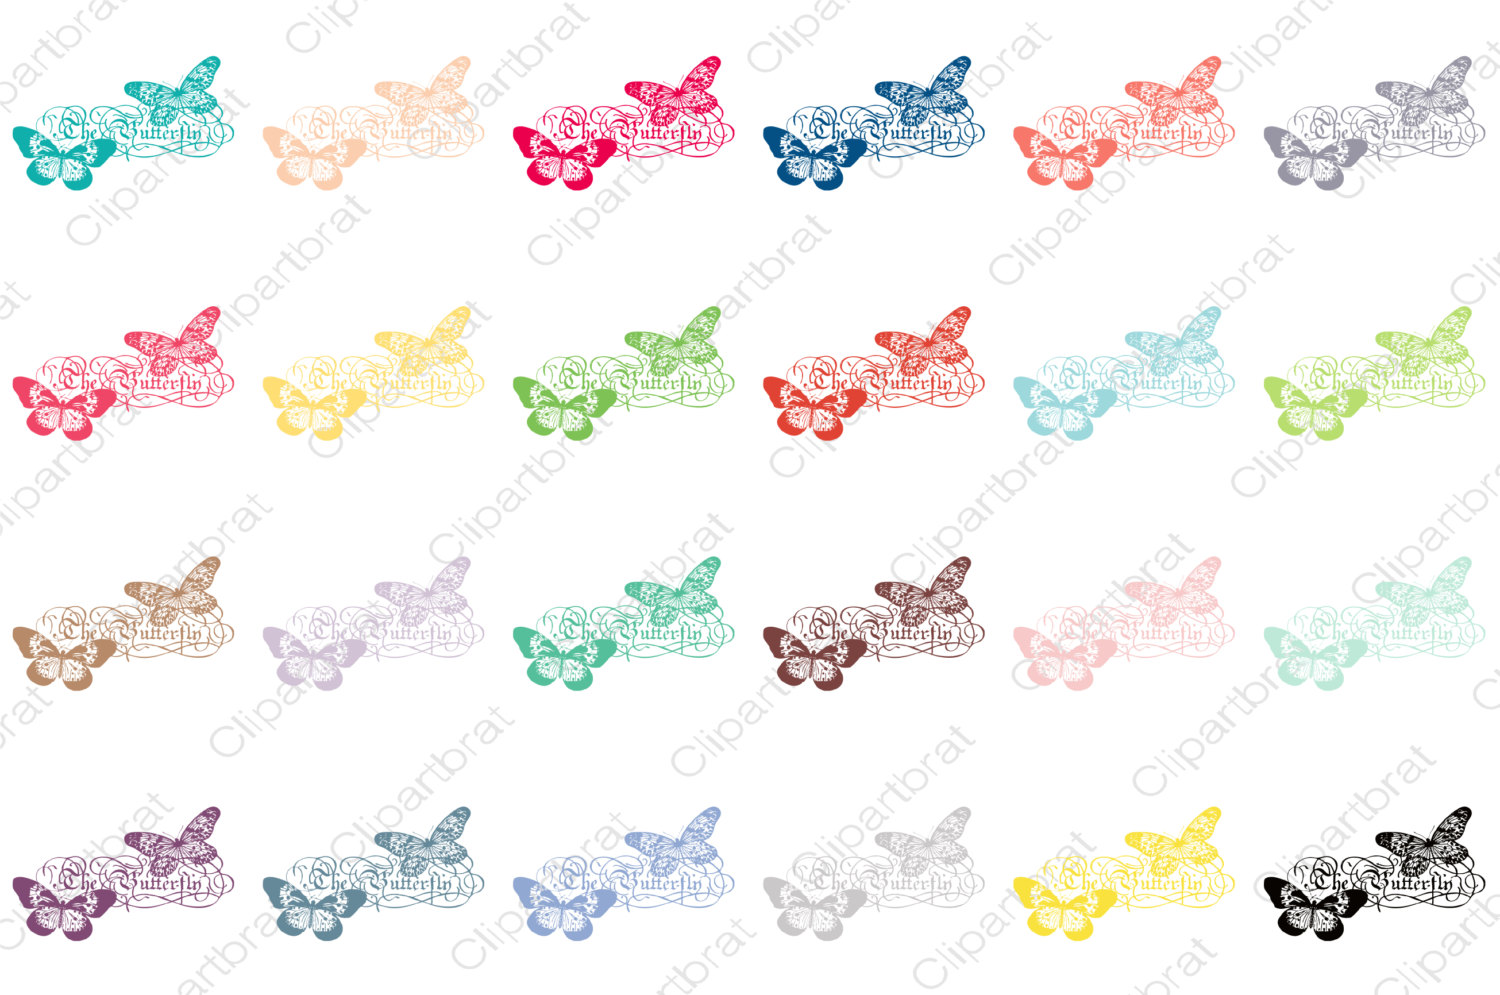 Free butterfly clipart for commercial use image royalty free stock Butterfly clipart for commercial use - ClipartFox image royalty free stock